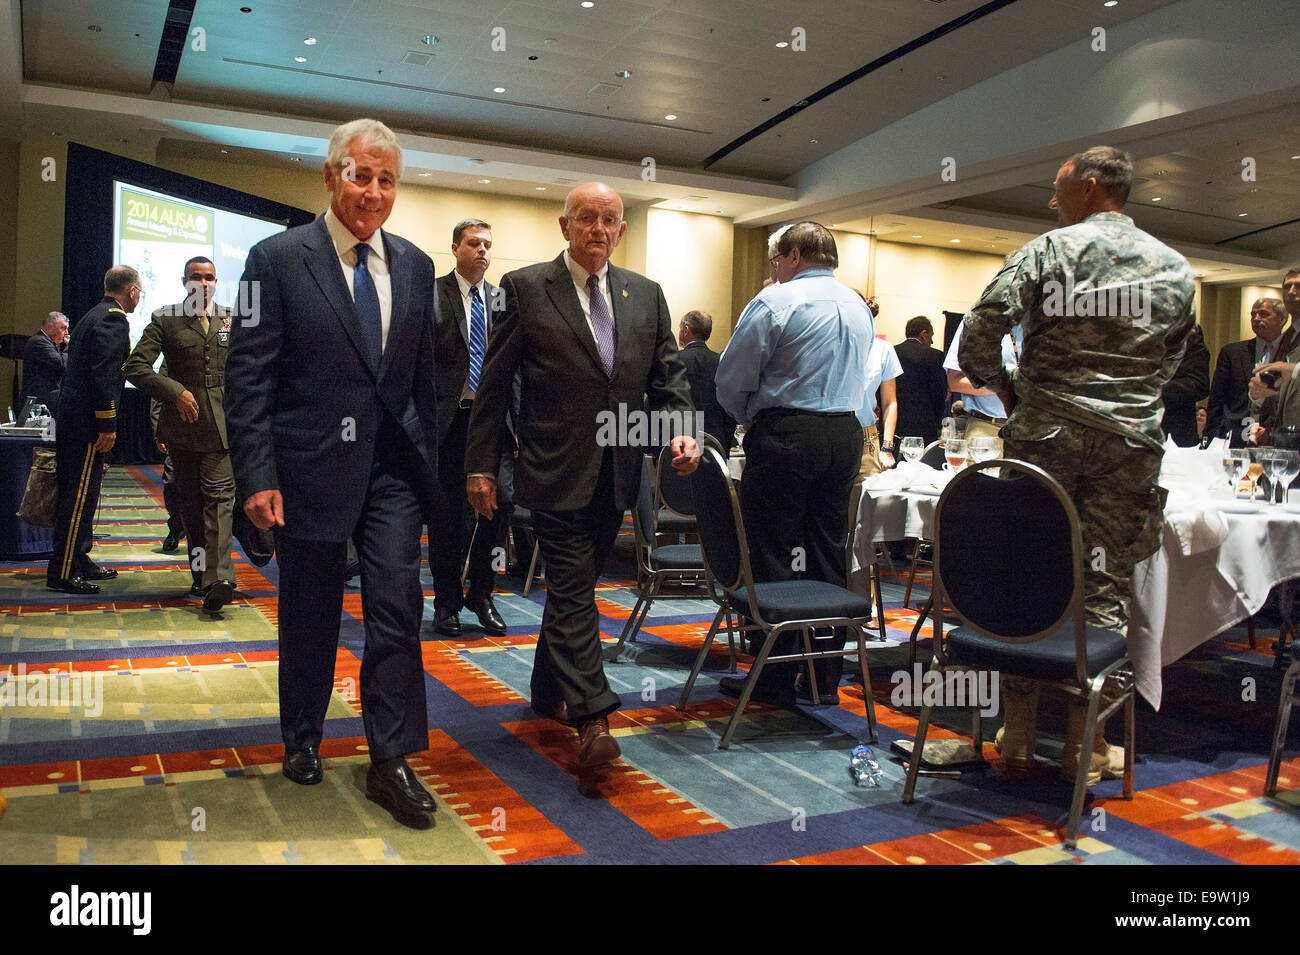 Association of the United States Army (AUSA) President and Chief Executive Officer retired Army Gen. Gordon Sullivan, Stock Photo